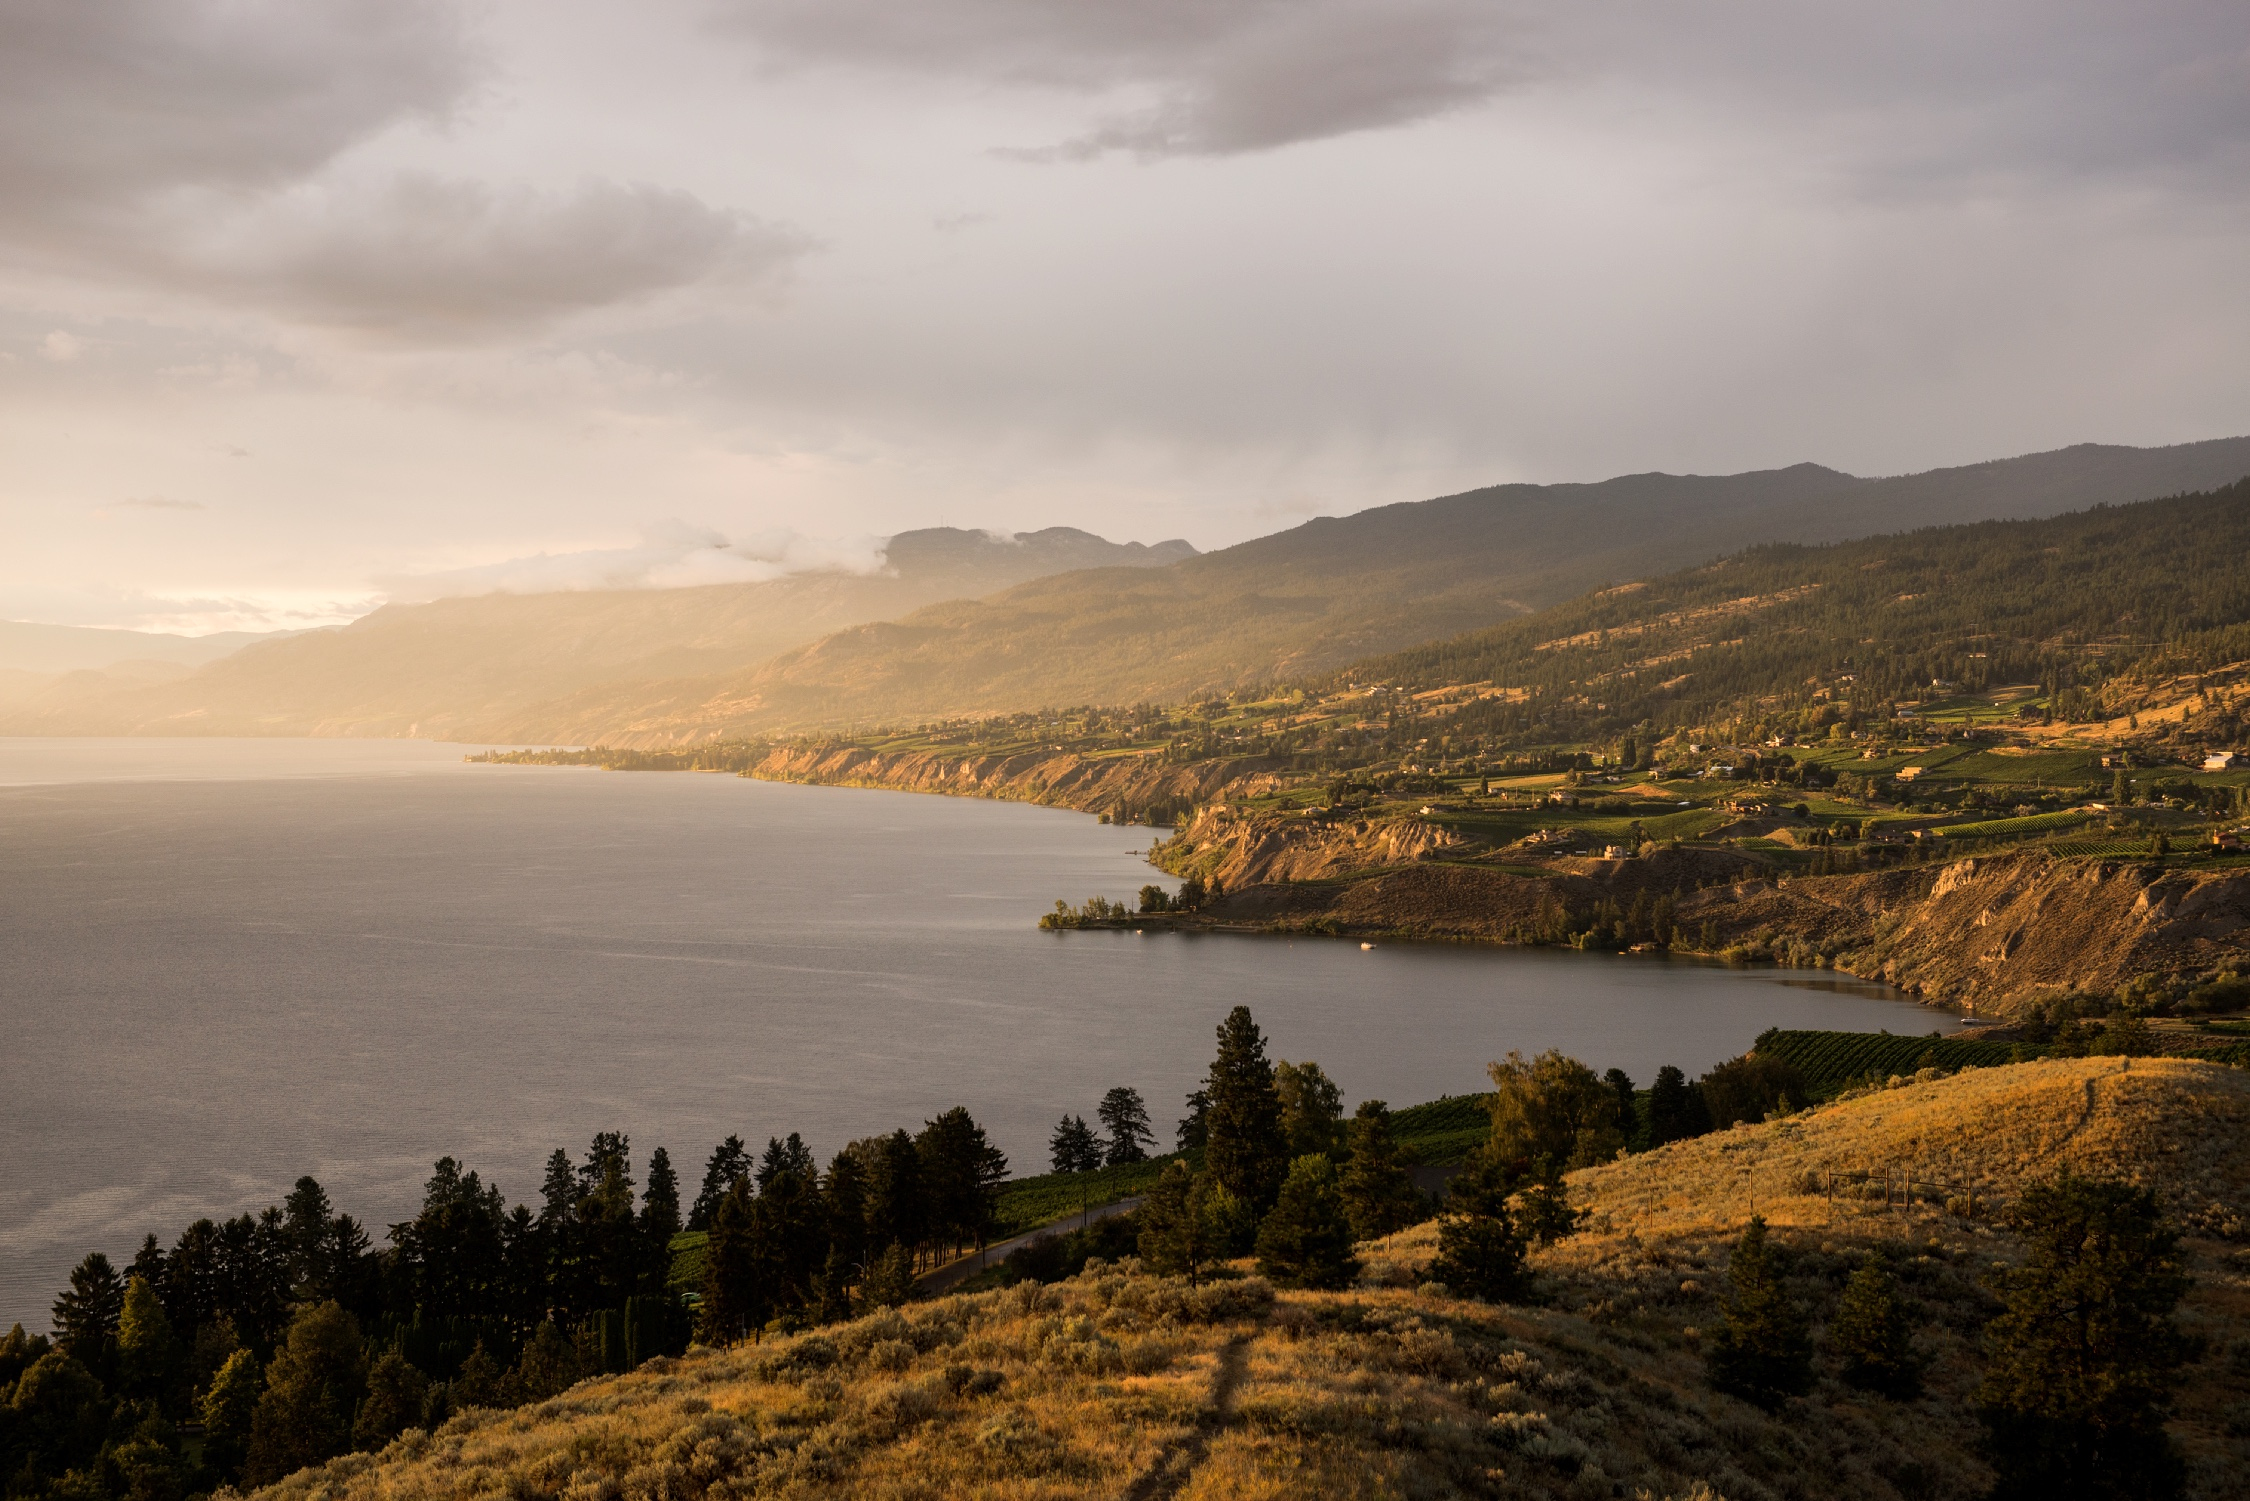 The sunset view of the east side of Okanagan Lake towards Naramata from Munson Mountain, Penticton, BC.